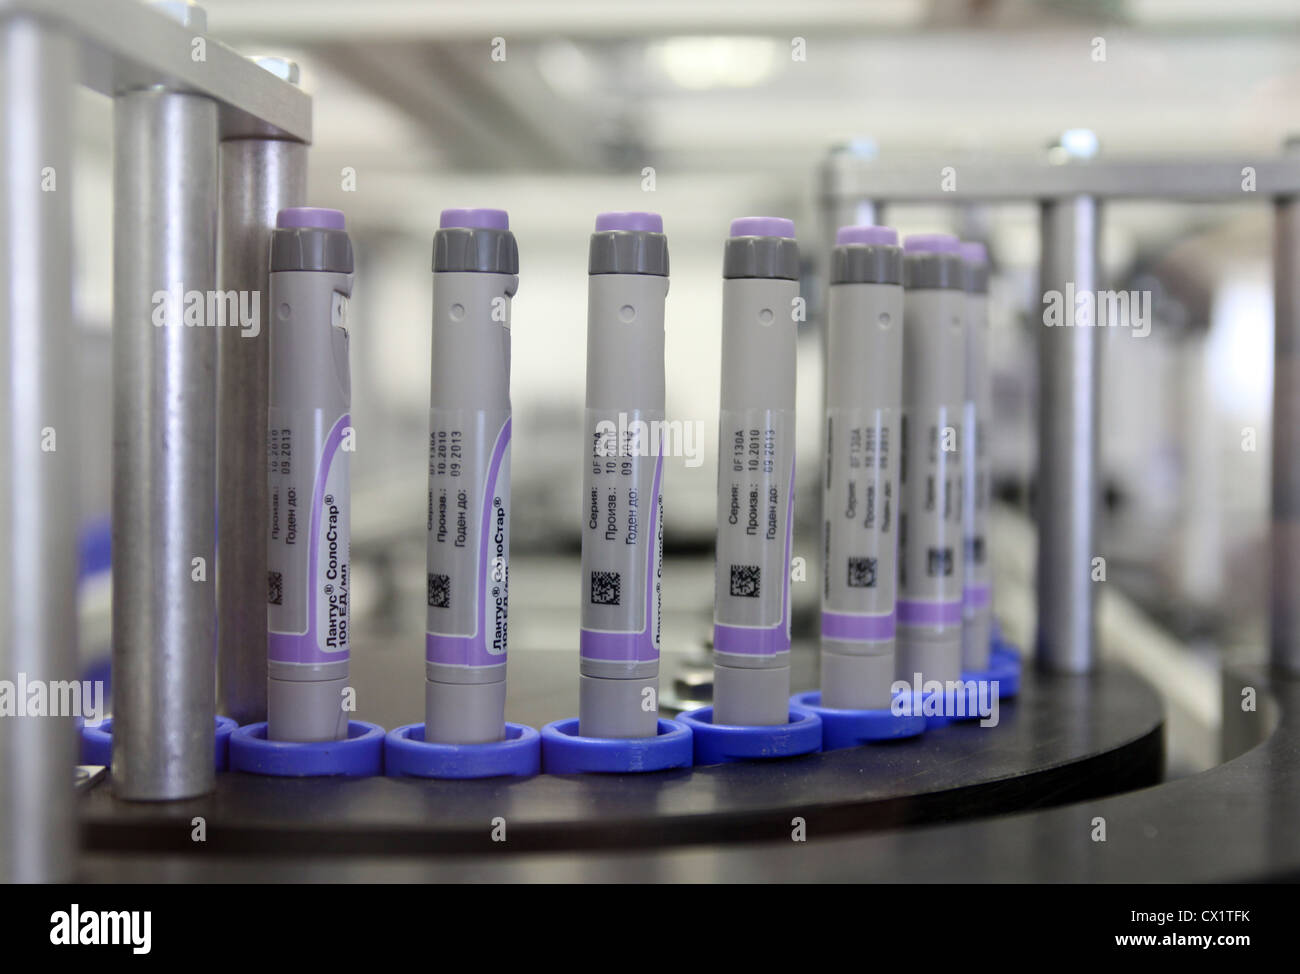 ITAR-TASS: ORYOL REGION, RUSSIA. MAY 24, 2011. Insulin glargine pens (brand name Lantus SoloStar) on an assembly - Stock Image